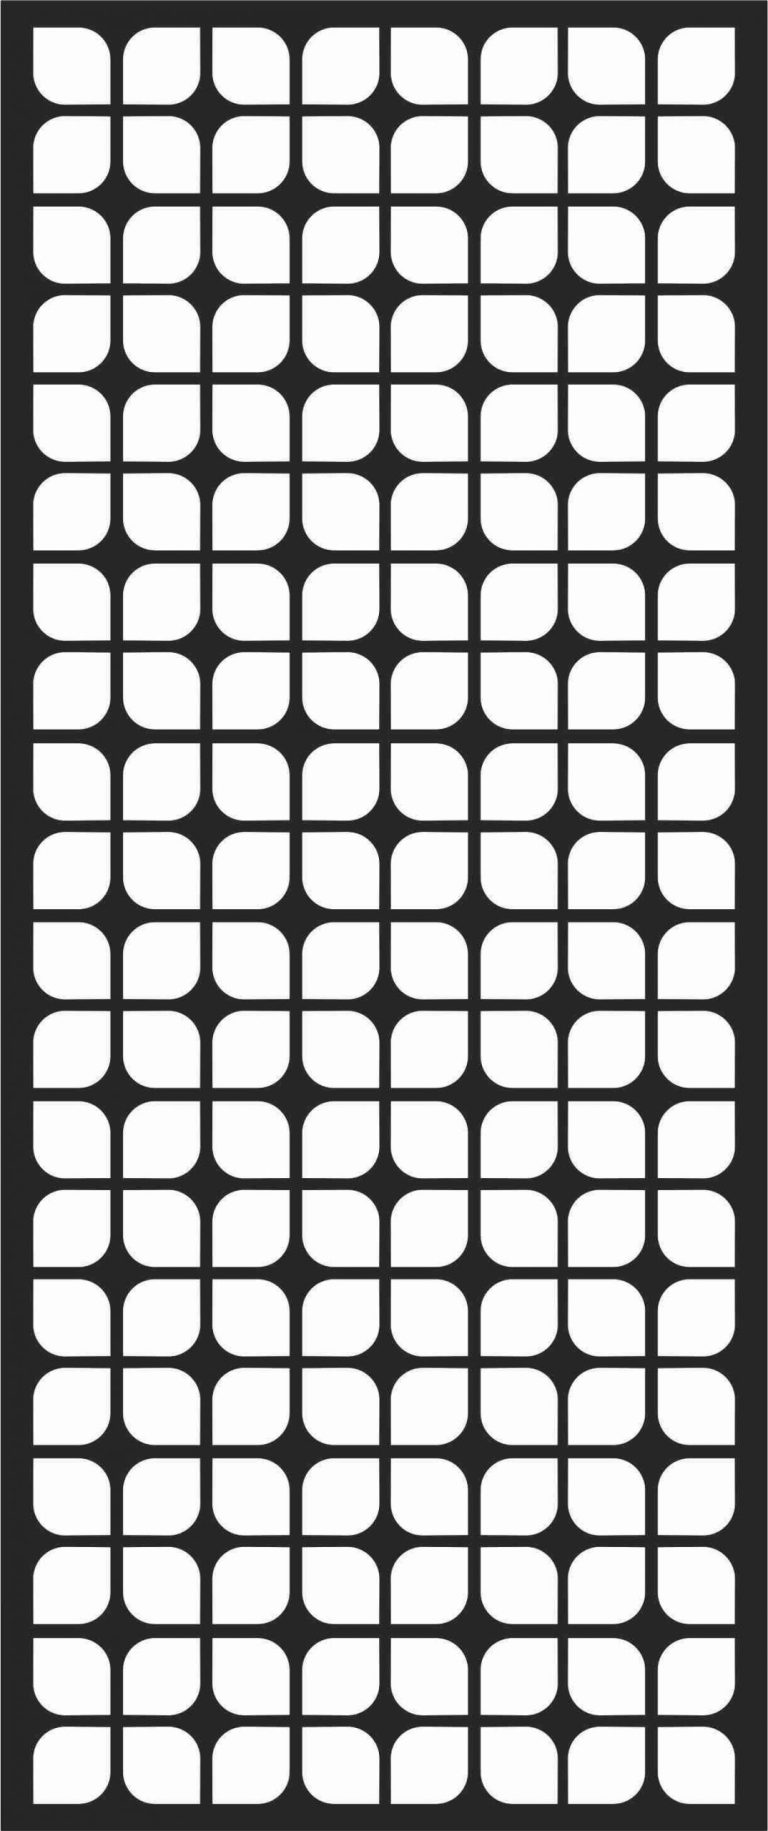 Floral Screen Patterns Design 17 Free DXF File